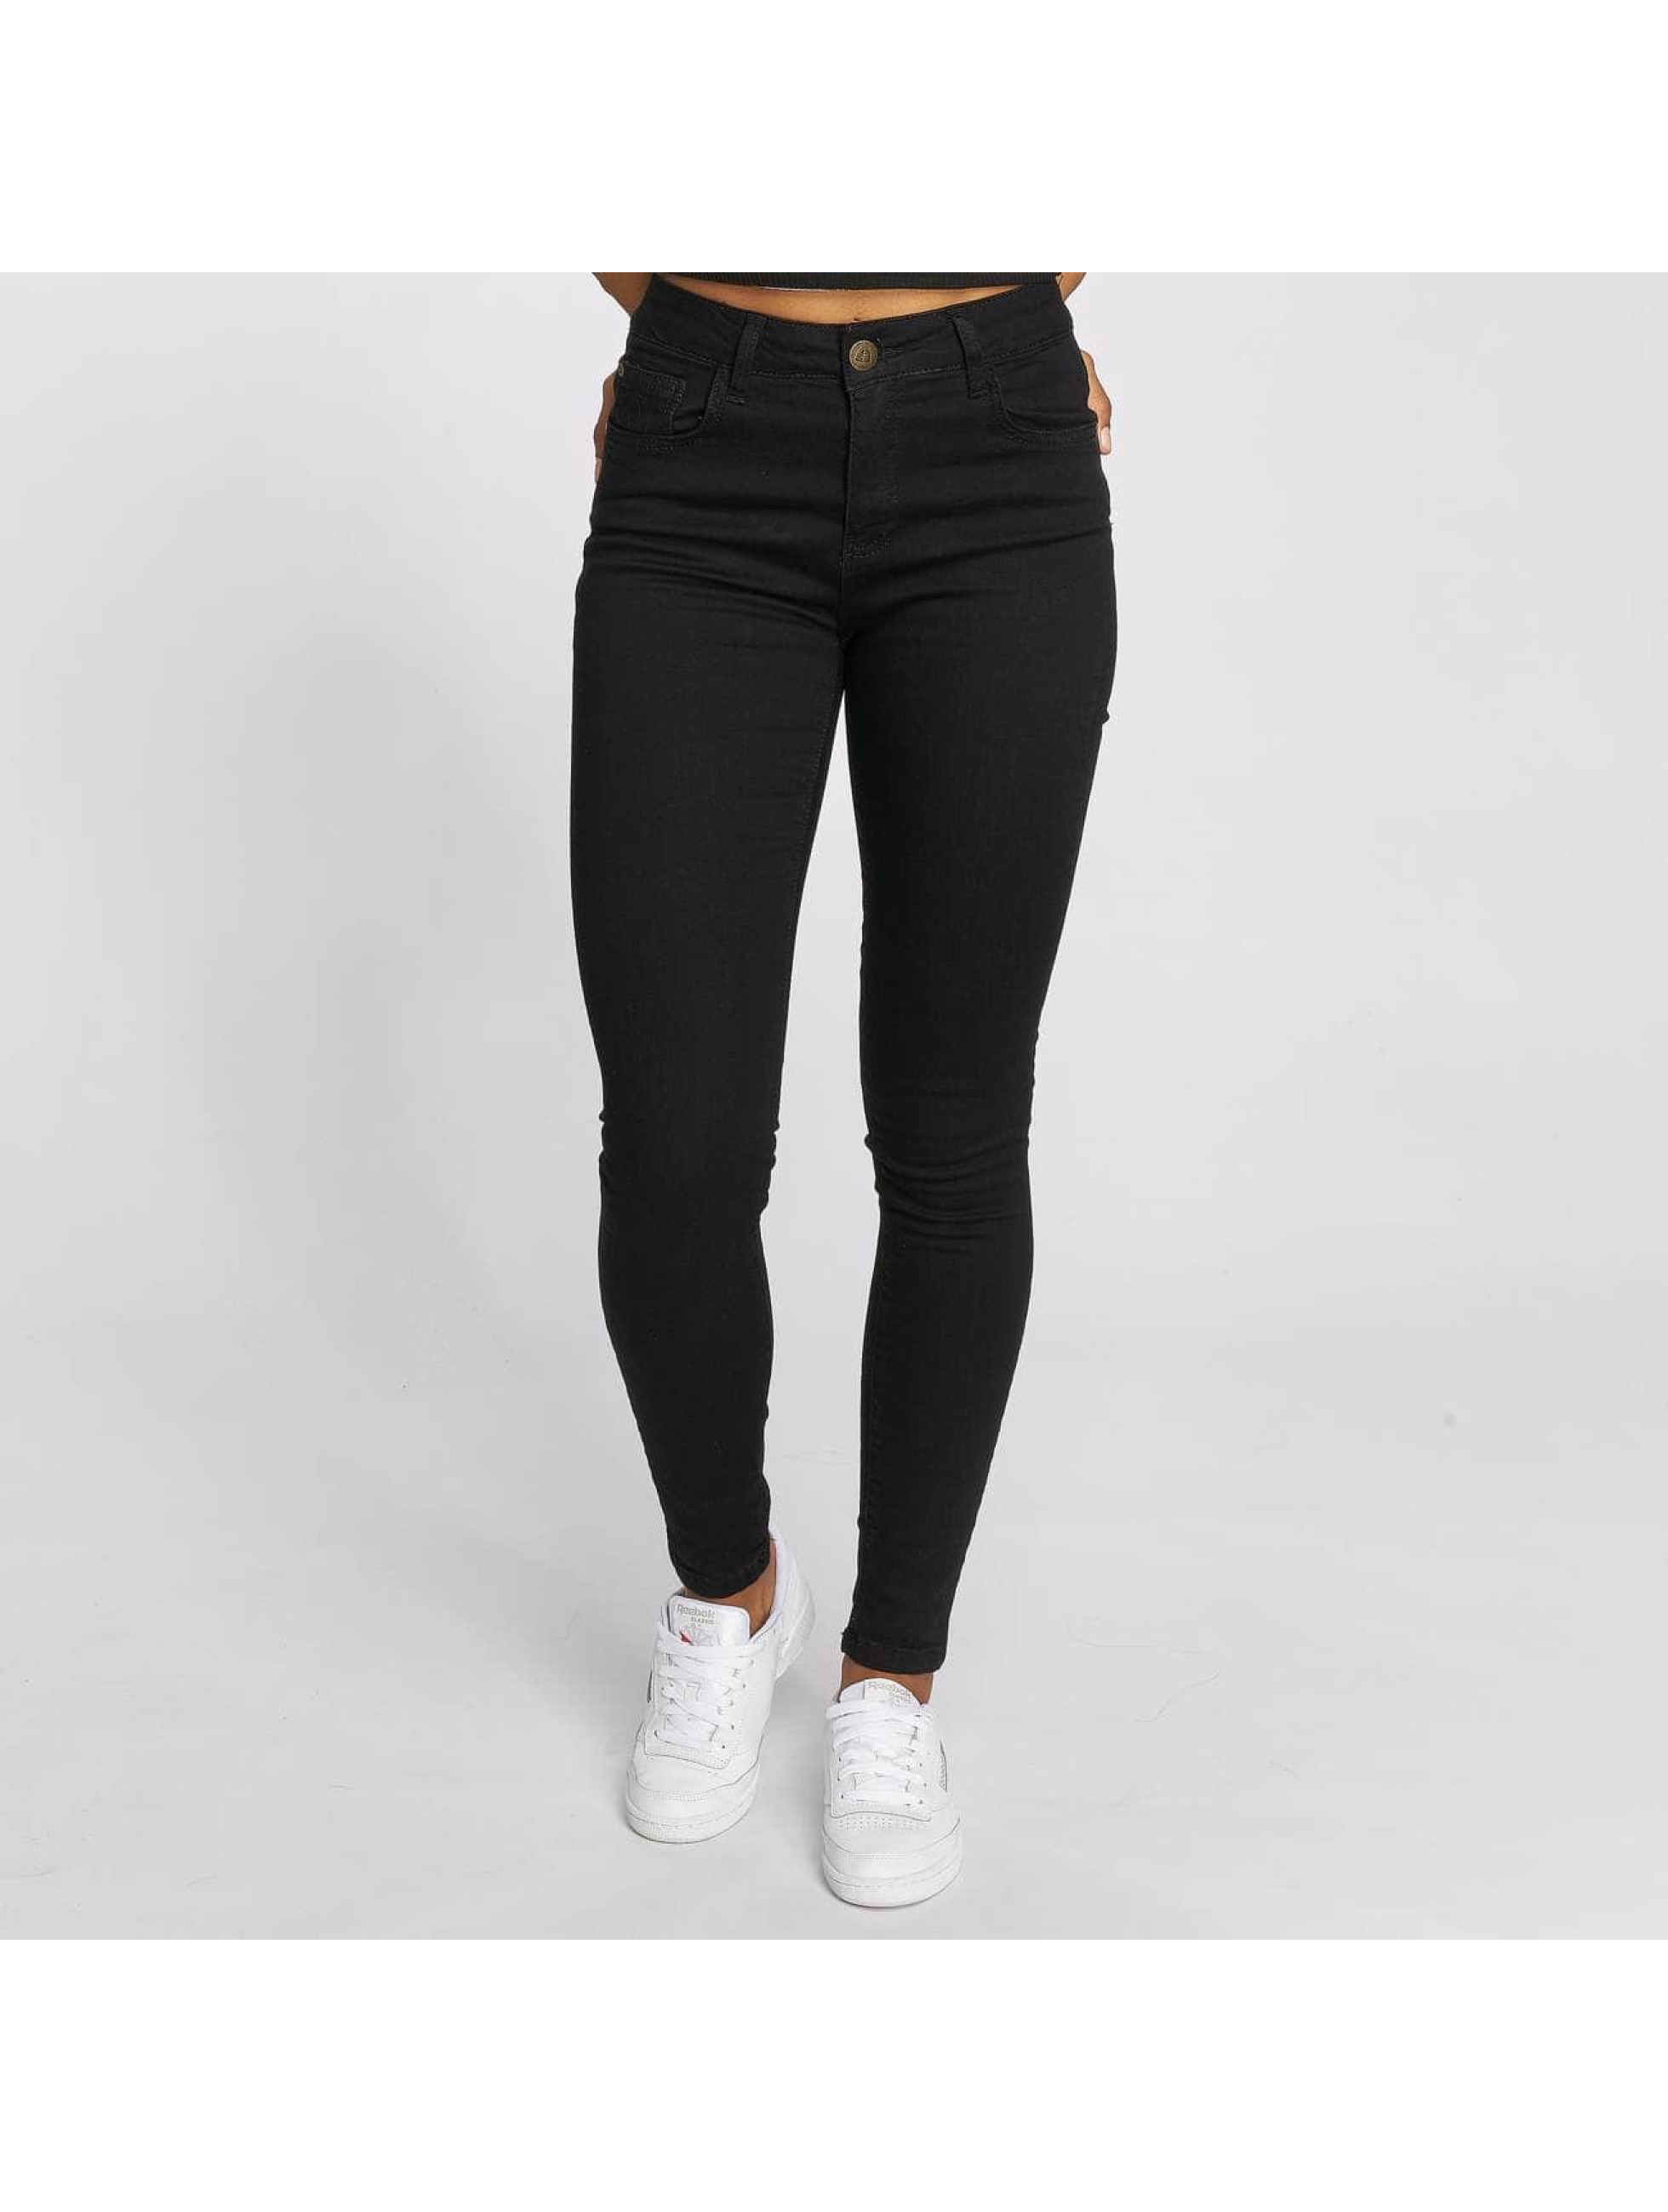 Just Rhyse / Skinny Jeans Buttercup in black W 27